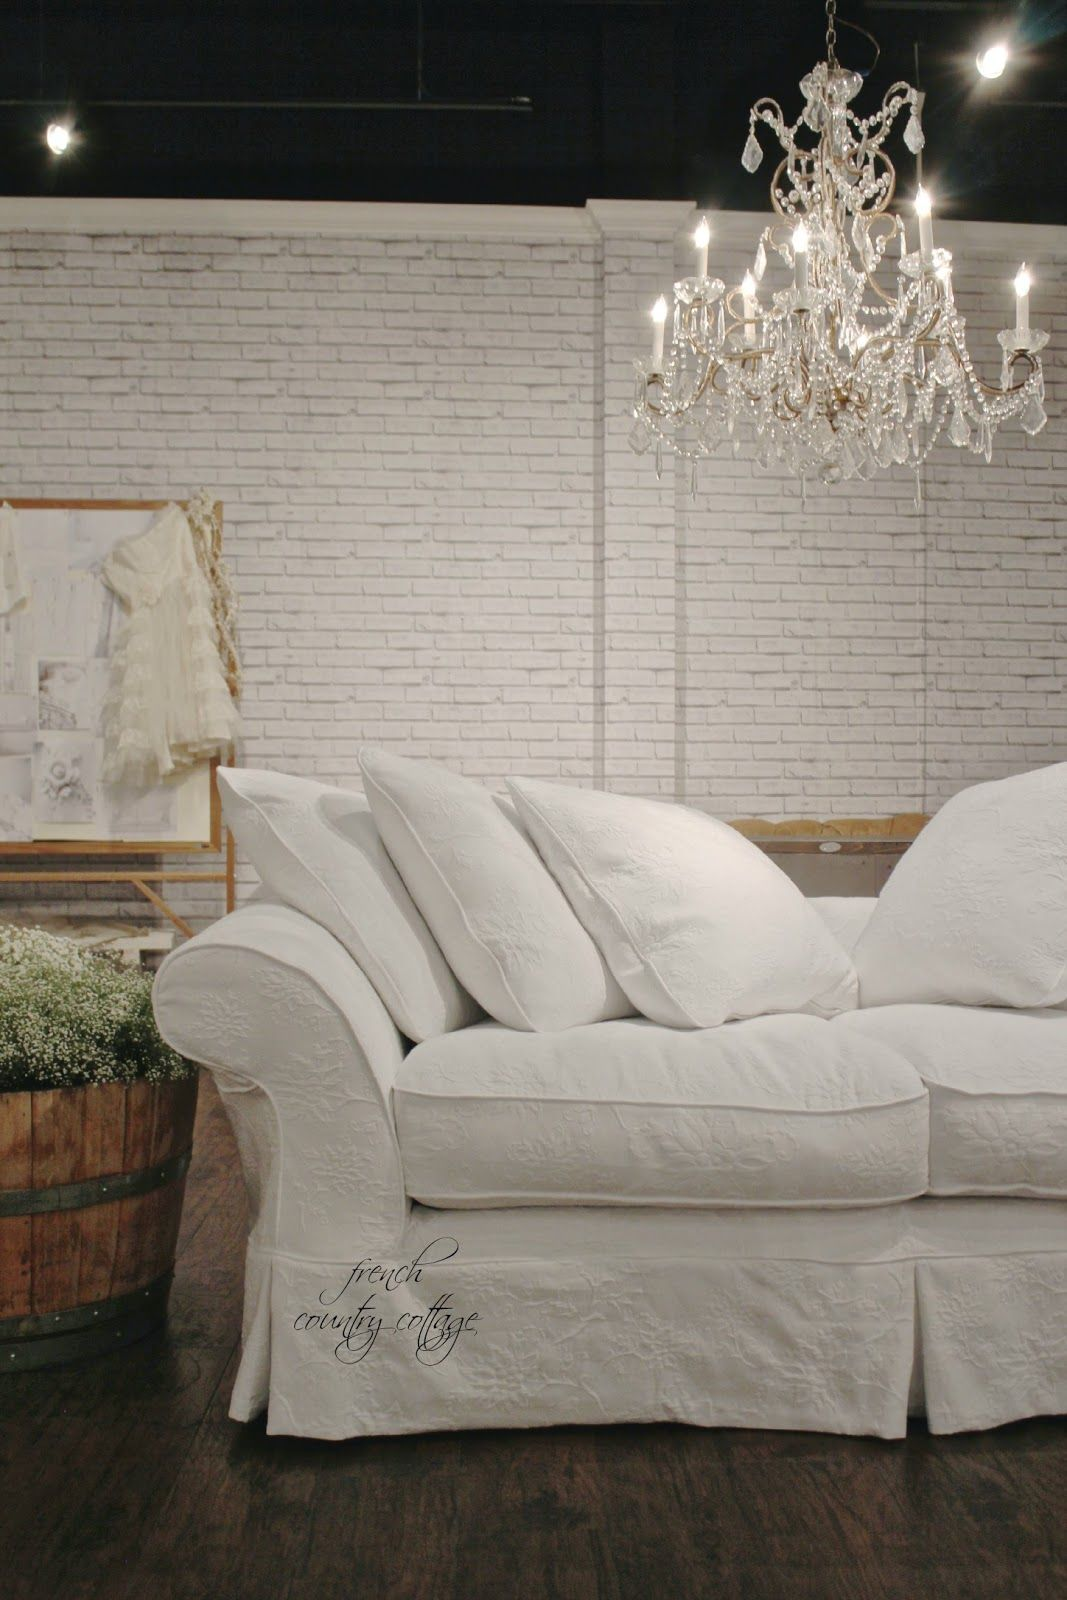 High Point Market Inspirations French Country Cottage Shabby Chic Sofa Chic Sofa Country Sofas #shabby #chic #sofas #living #room #furniture